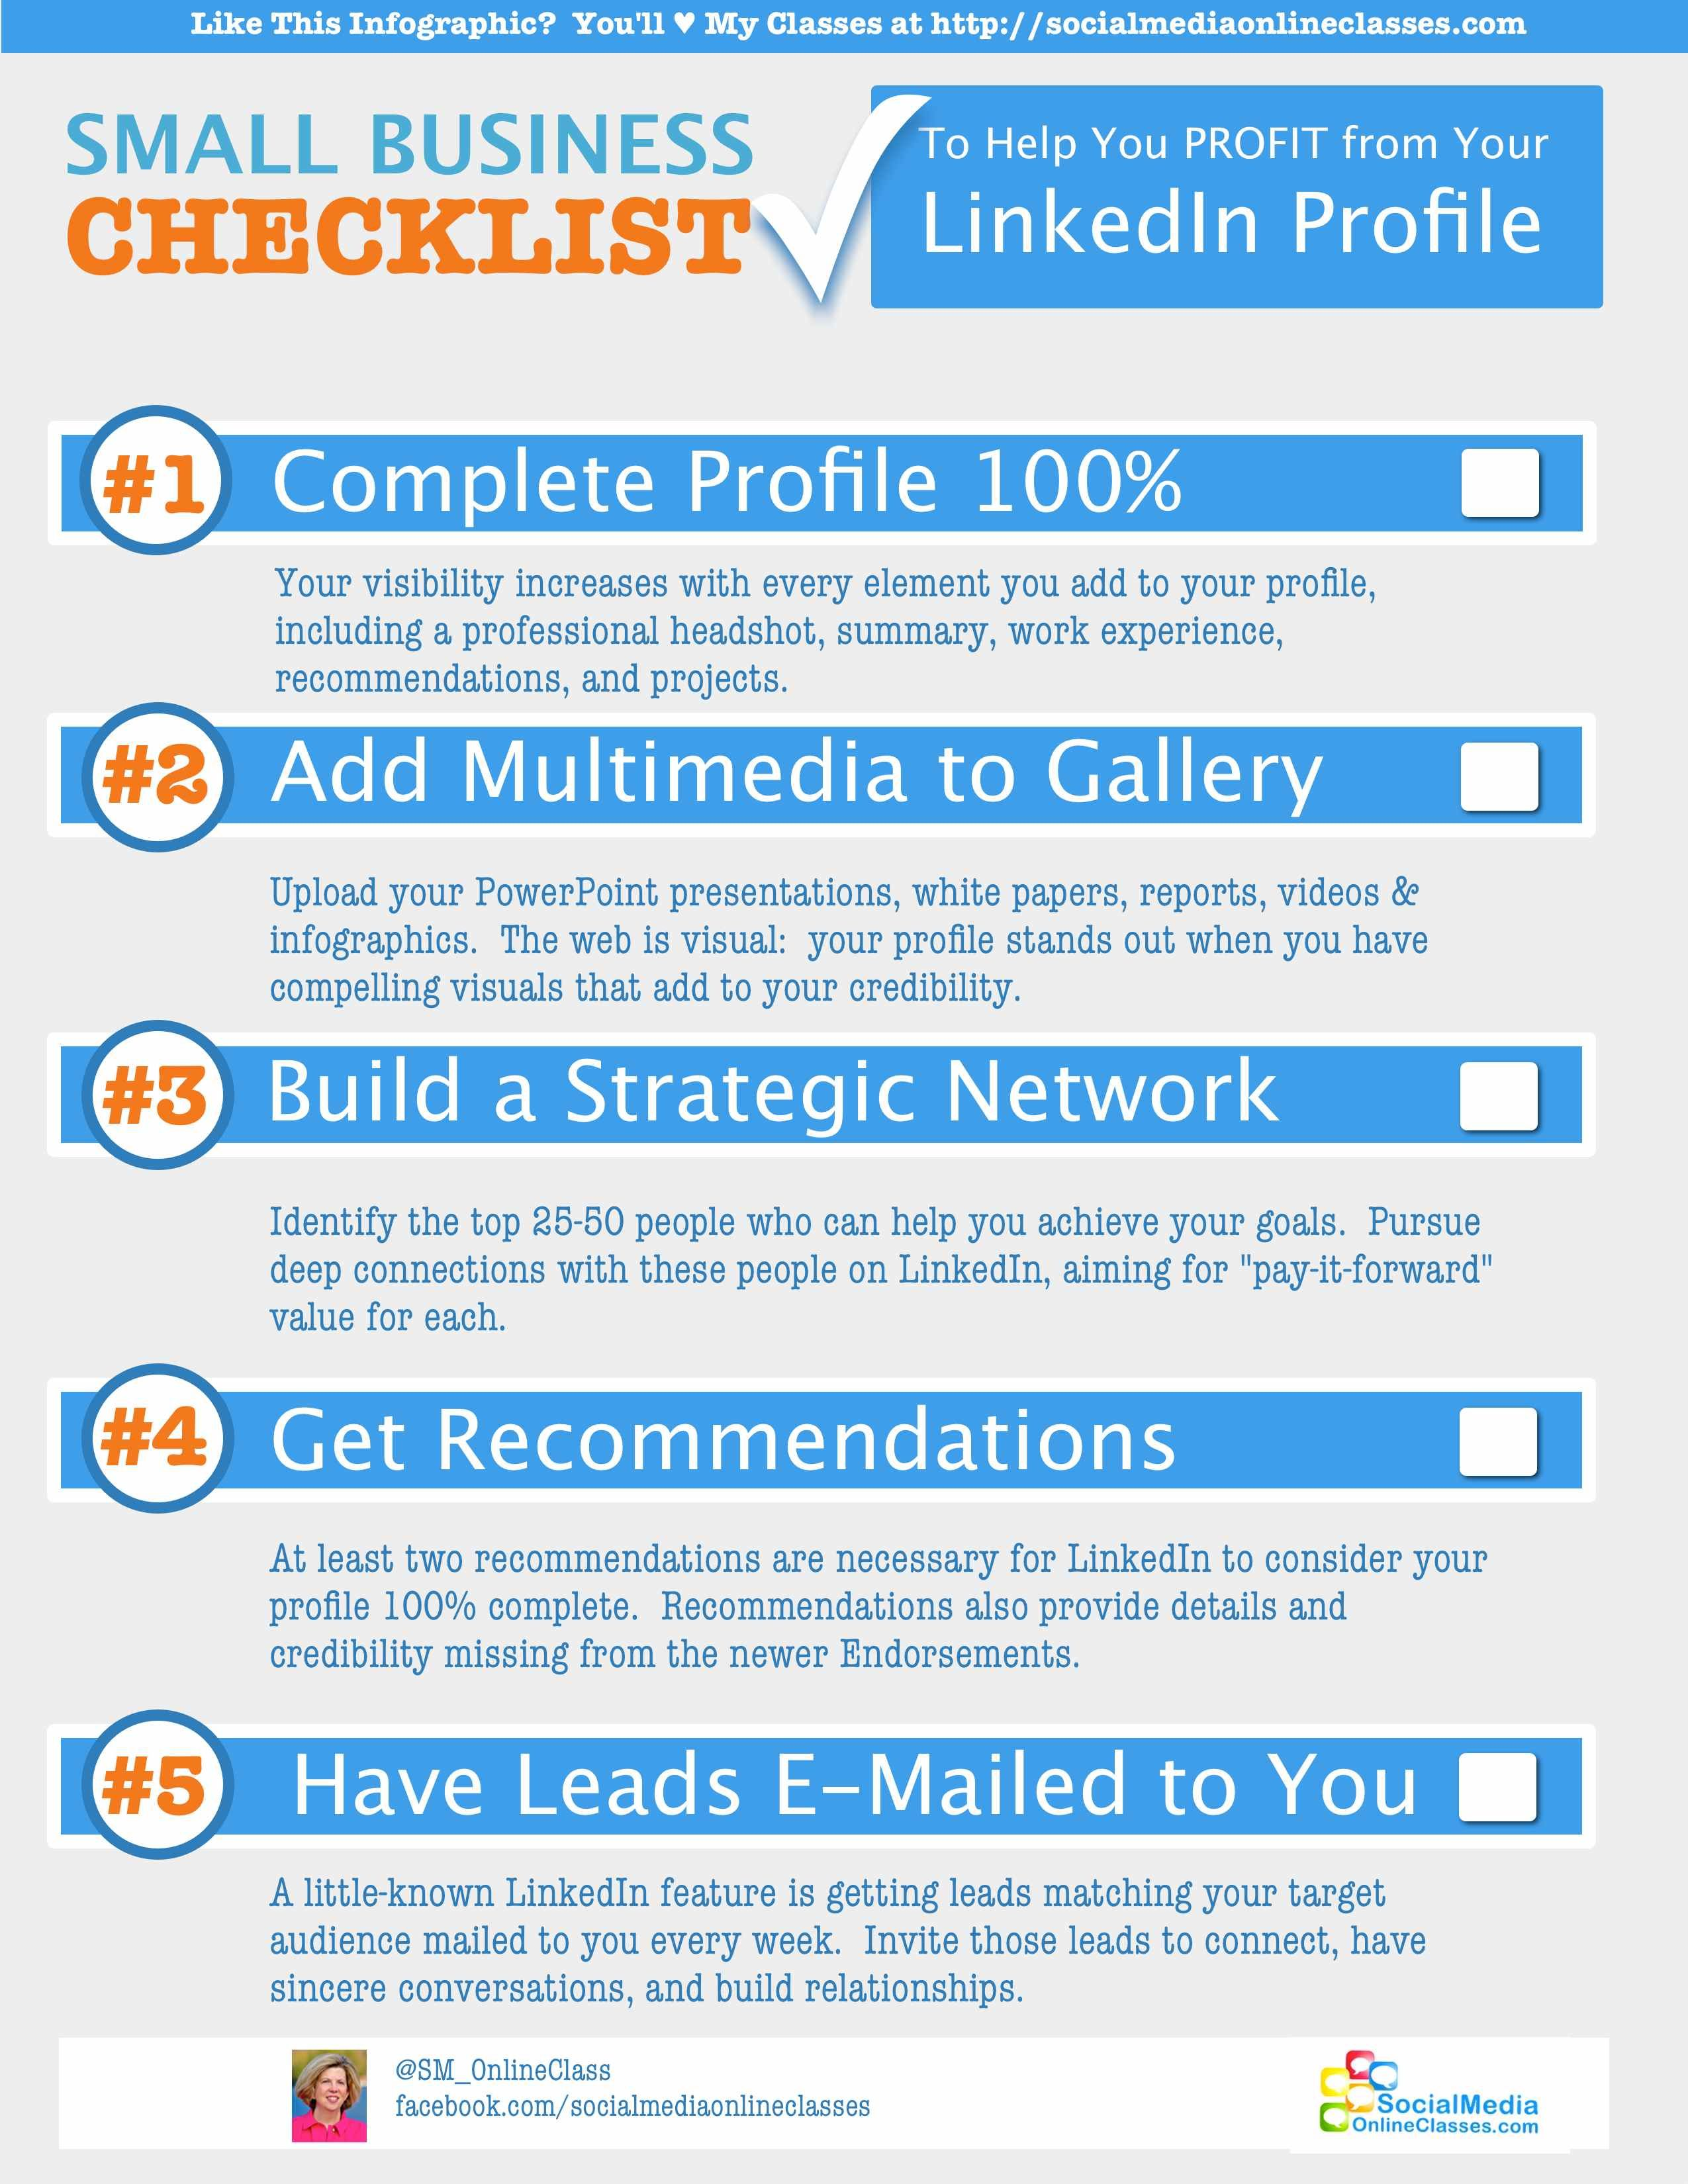 How To Market Yourself On Linkedin And Become A Linkedin Power User Linkedin Jobsearch Caree Linkedin Marketing Social Media Infographic Business Checklist